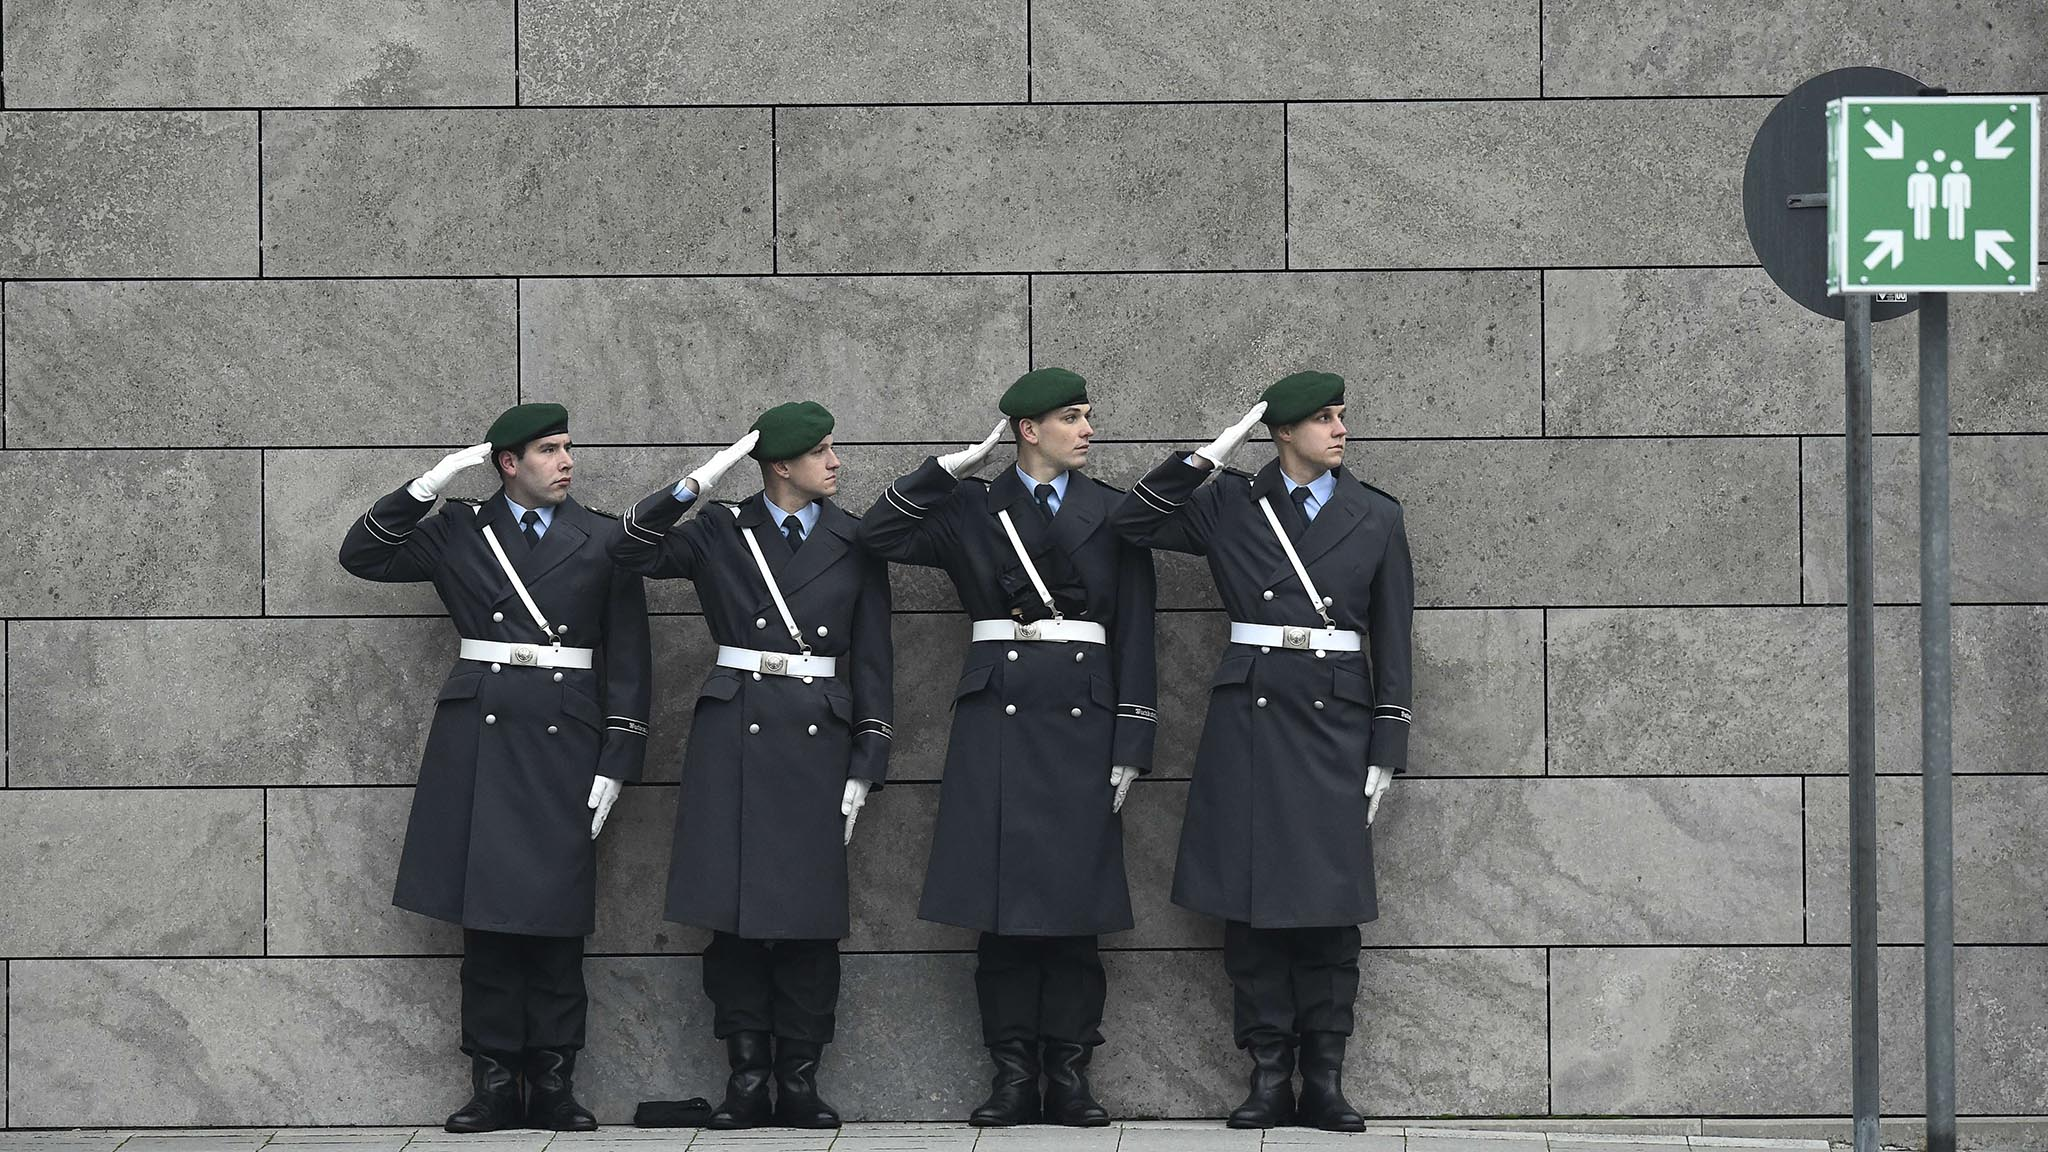 German Bundeswehr soldiers of an honor